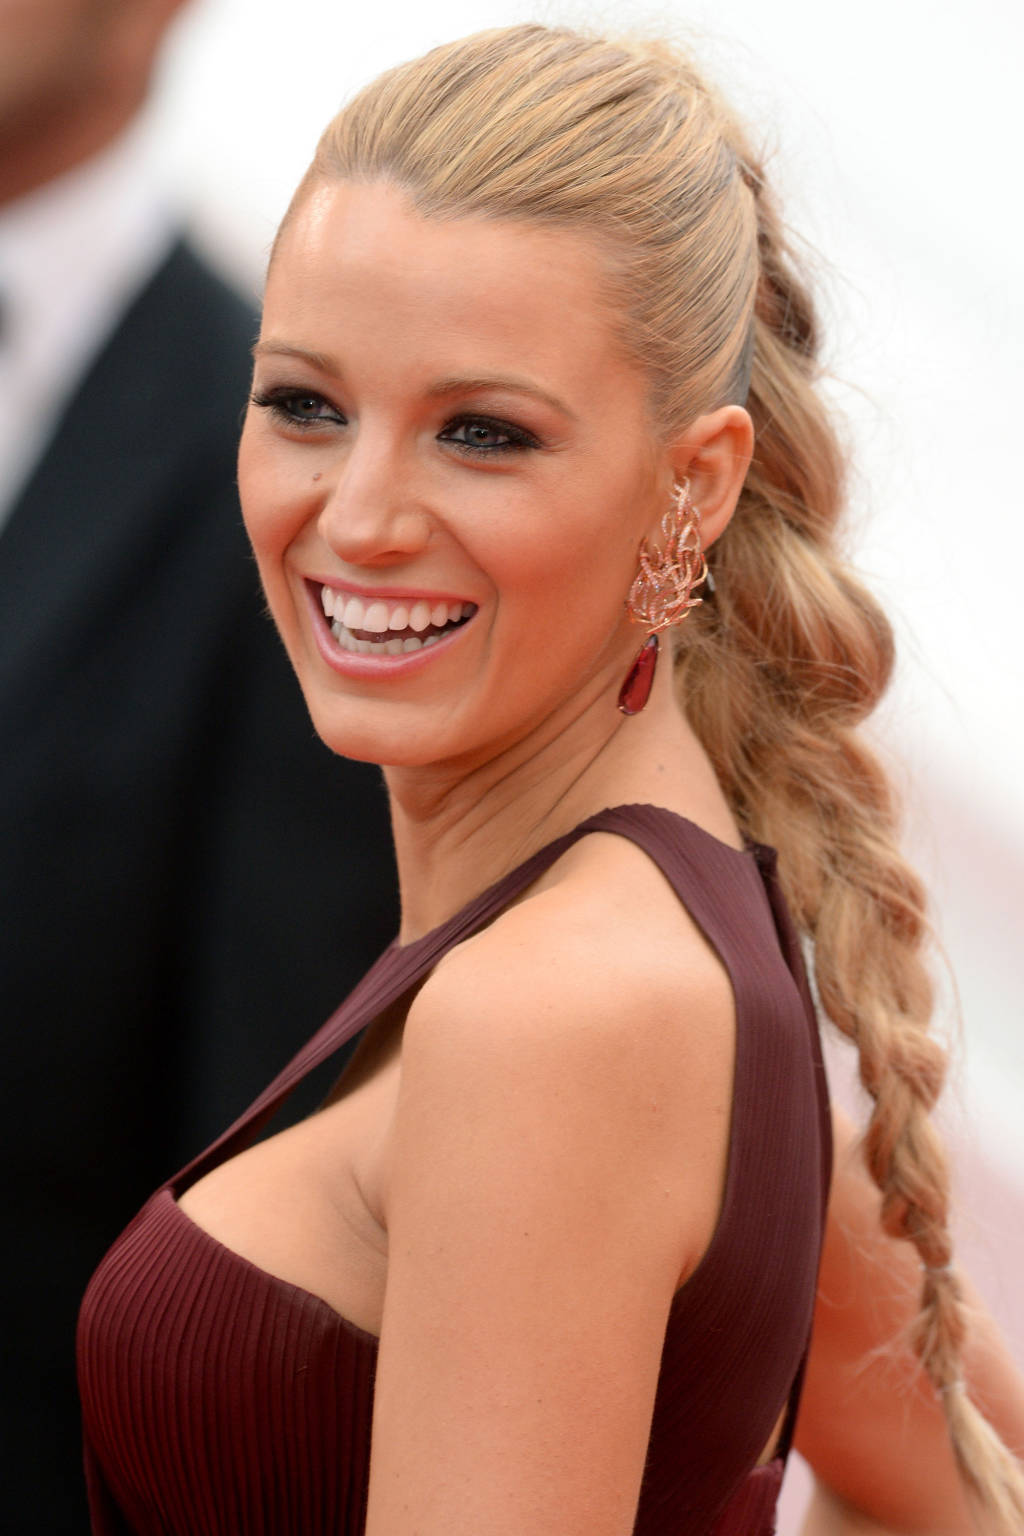 best braids hairstyles for new year 2015 | hairstyles 2017, hair